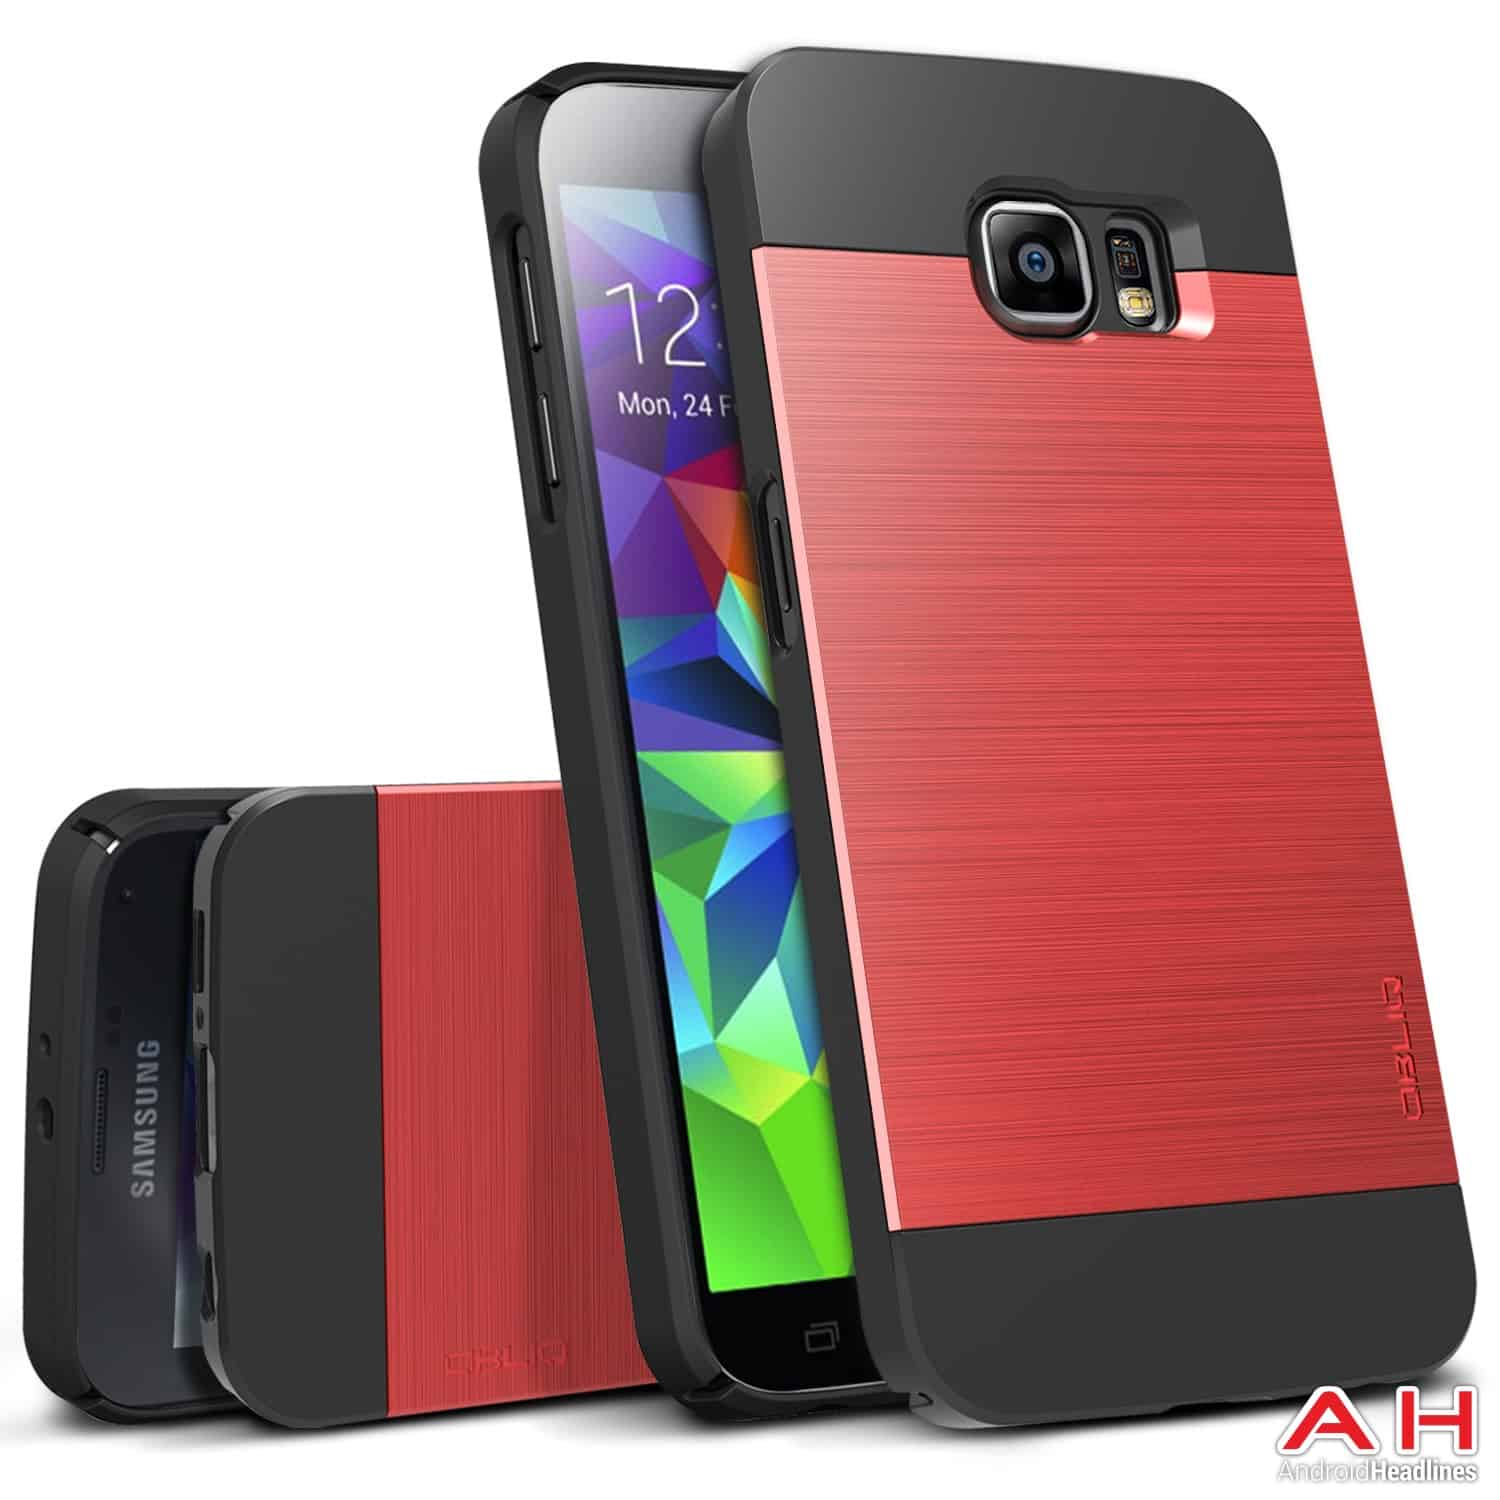 Samsung Galaxy S4 Leaked Case Images Feb 16th 1.2